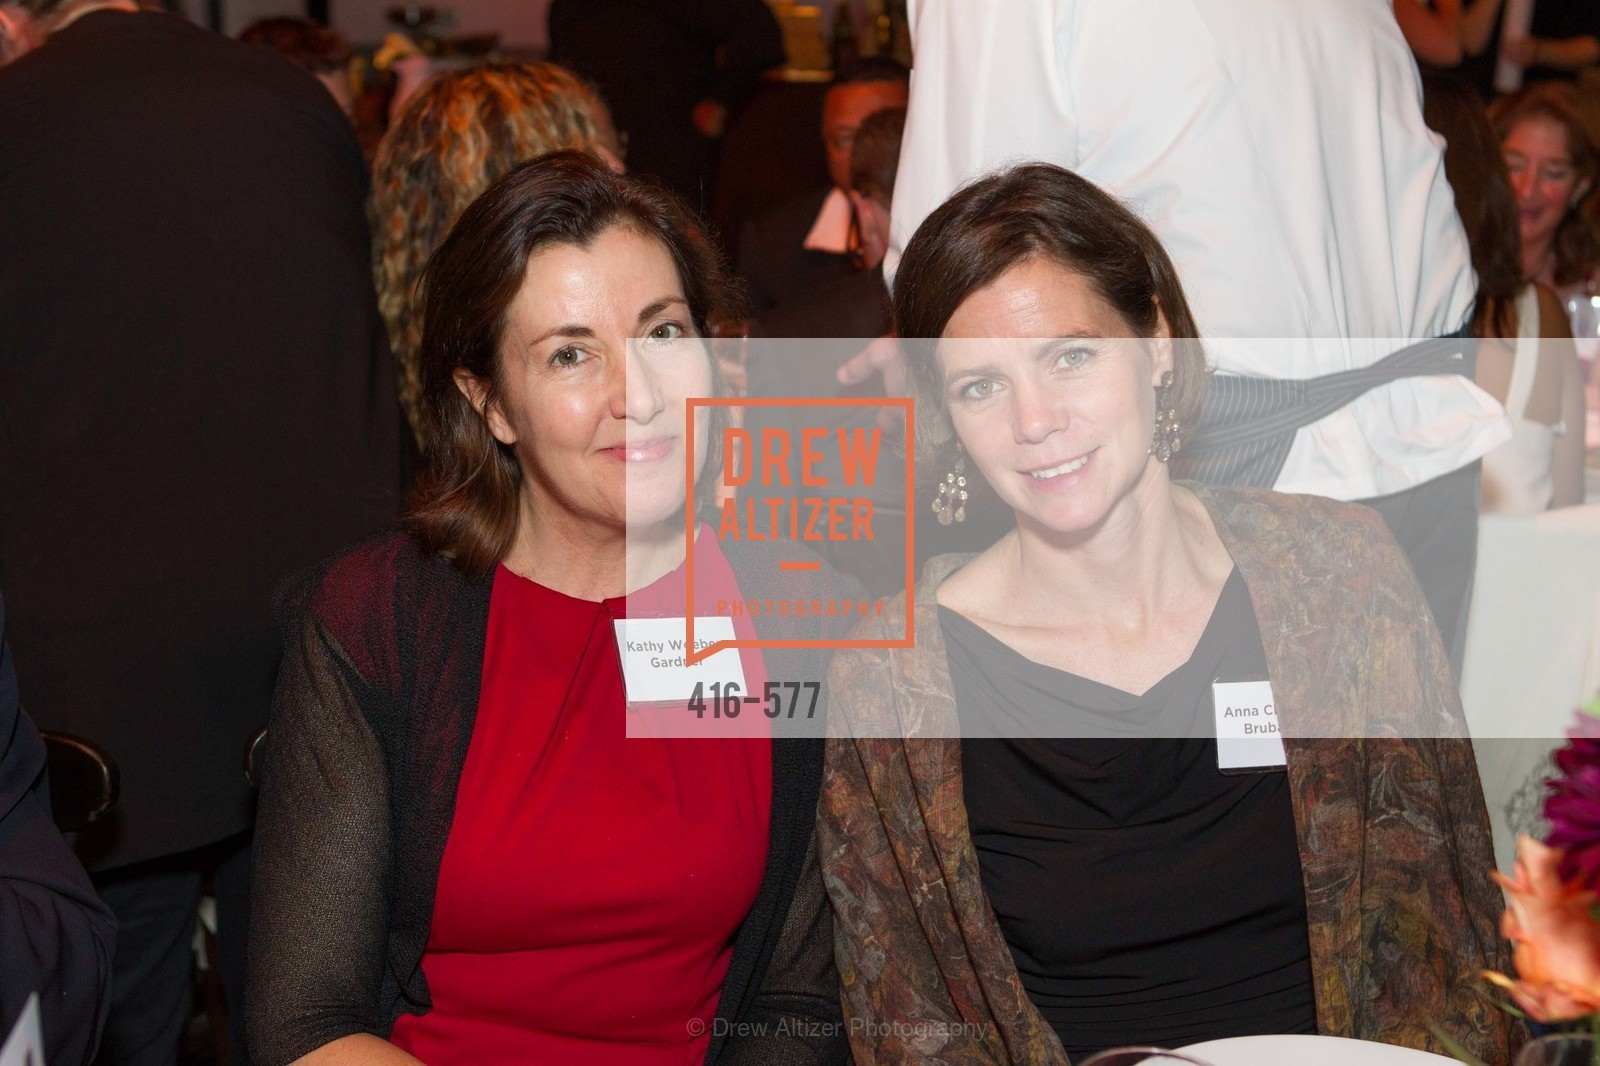 Kathy Woeber Gardner, Ana Brubaker, SF-MARIN FOOD BANK One Big Table Gala, US, September 27th, 2014,Drew Altizer, Drew Altizer Photography, full-service agency, private events, San Francisco photographer, photographer california